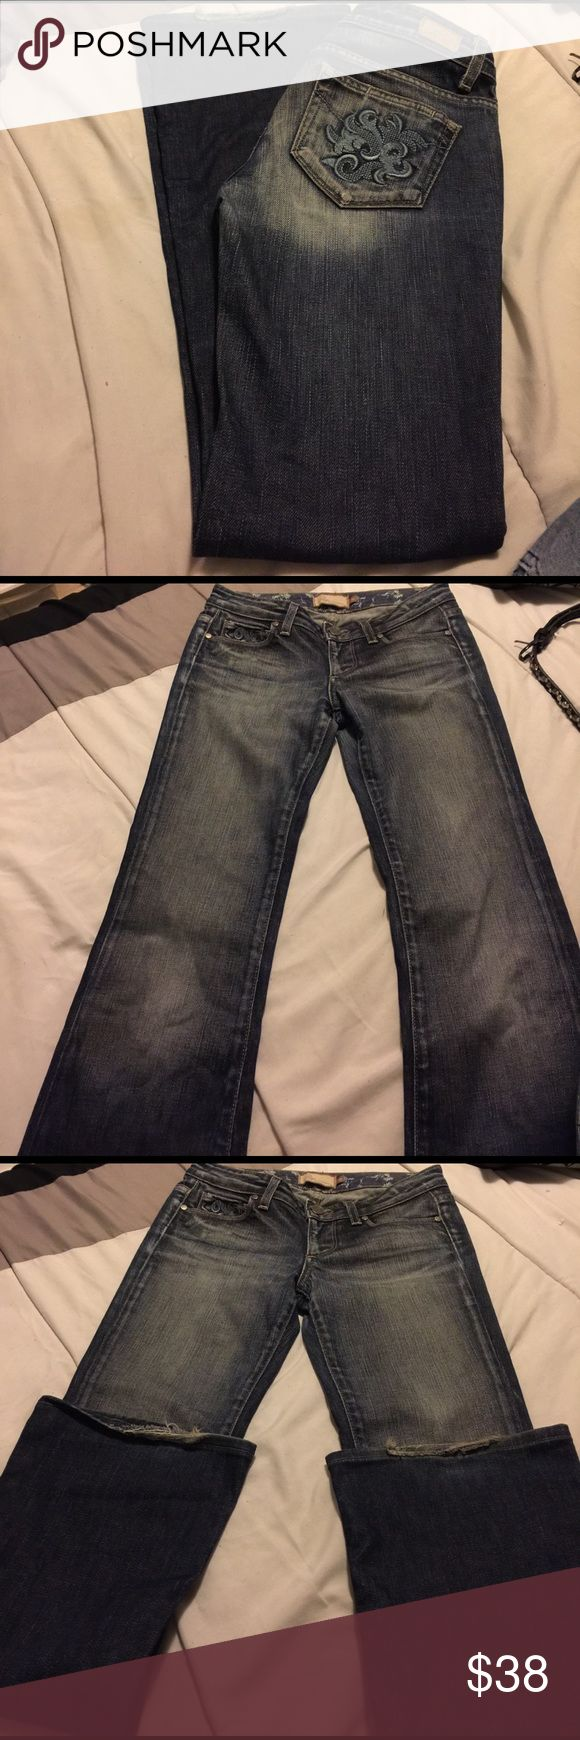 Paige premium denim Hollywood Hills size 25 39 inches long .Leg opening is 9 inches flat. It does have some fringing on the back, as seen on pics. Other than that are in good condition. No trades or modeling.98% cotton , 2% spandex. Made in U.S.A. Paige Jeans Jeans Flare & Wide Leg